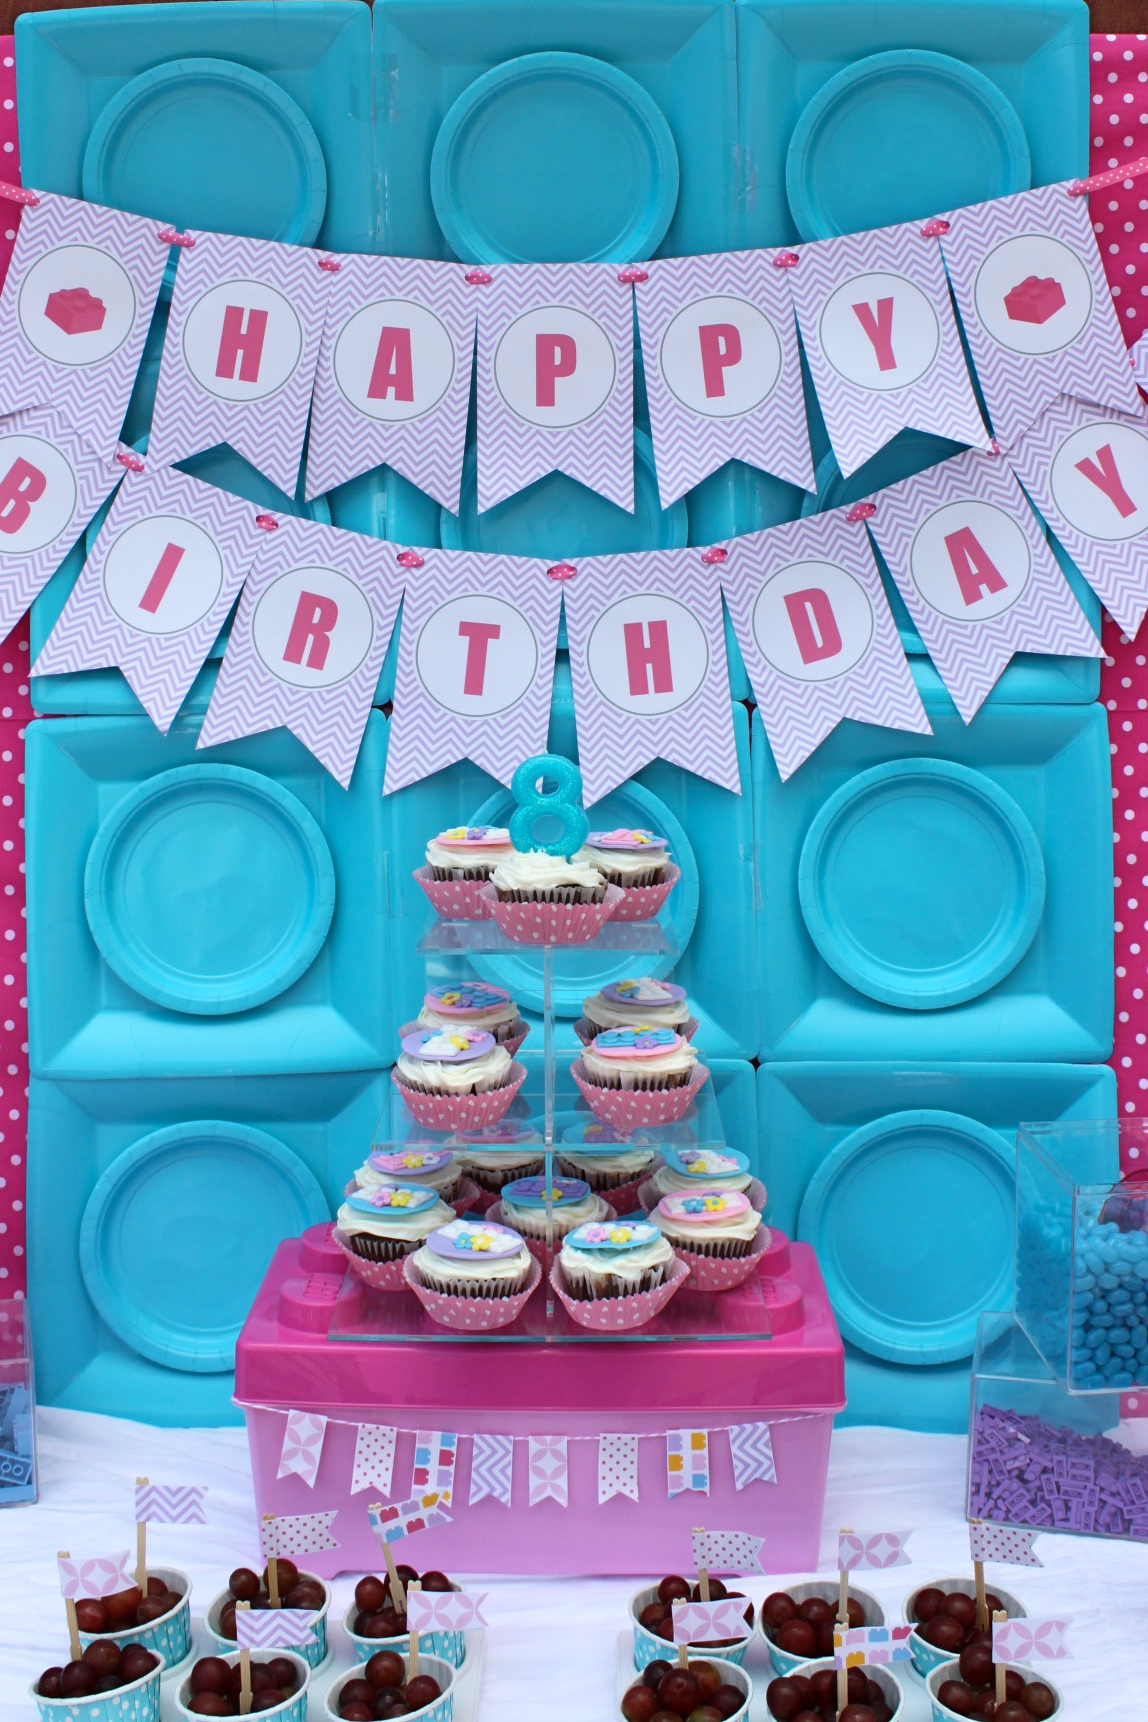 Madison wanted cupcakes so I had Lego cupcake toppers made by Carrie Budke of AngelCakes. I placed them on an acrylic cake stand set atop a giant Lego box. & Lego Friends Party | Partying with the Princesses